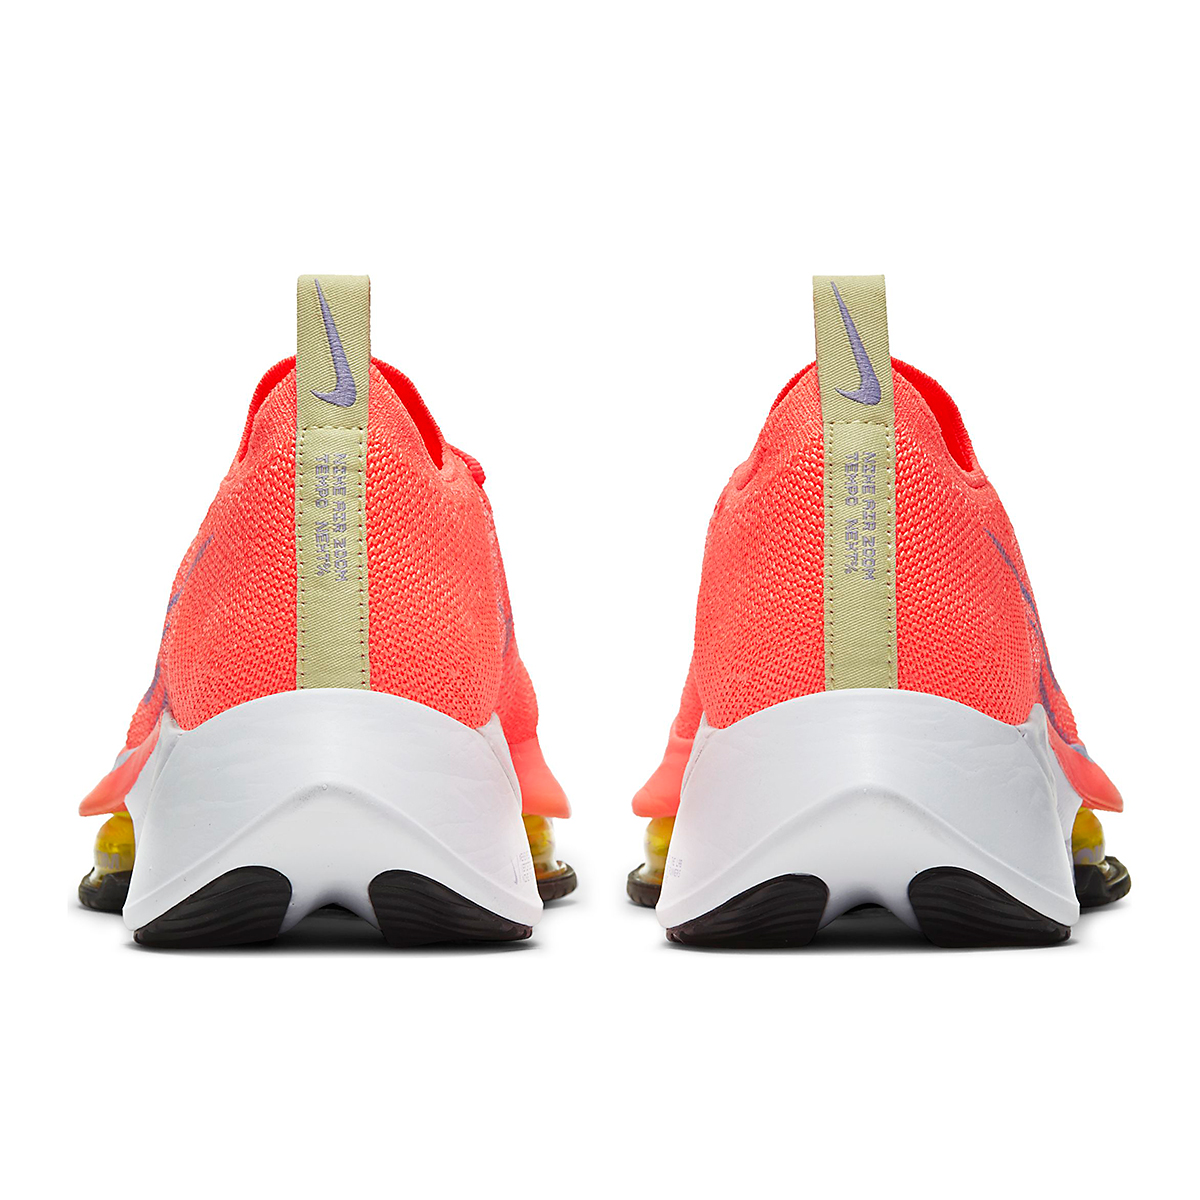 Women's Nike Air Zoom Tempo NEXT% Running Shoe - Color: Bright Mango/Purple Pulse-White - Size: 5.5 - Width: Regular, Bright Mango/Purple Pulse-White, large, image 5